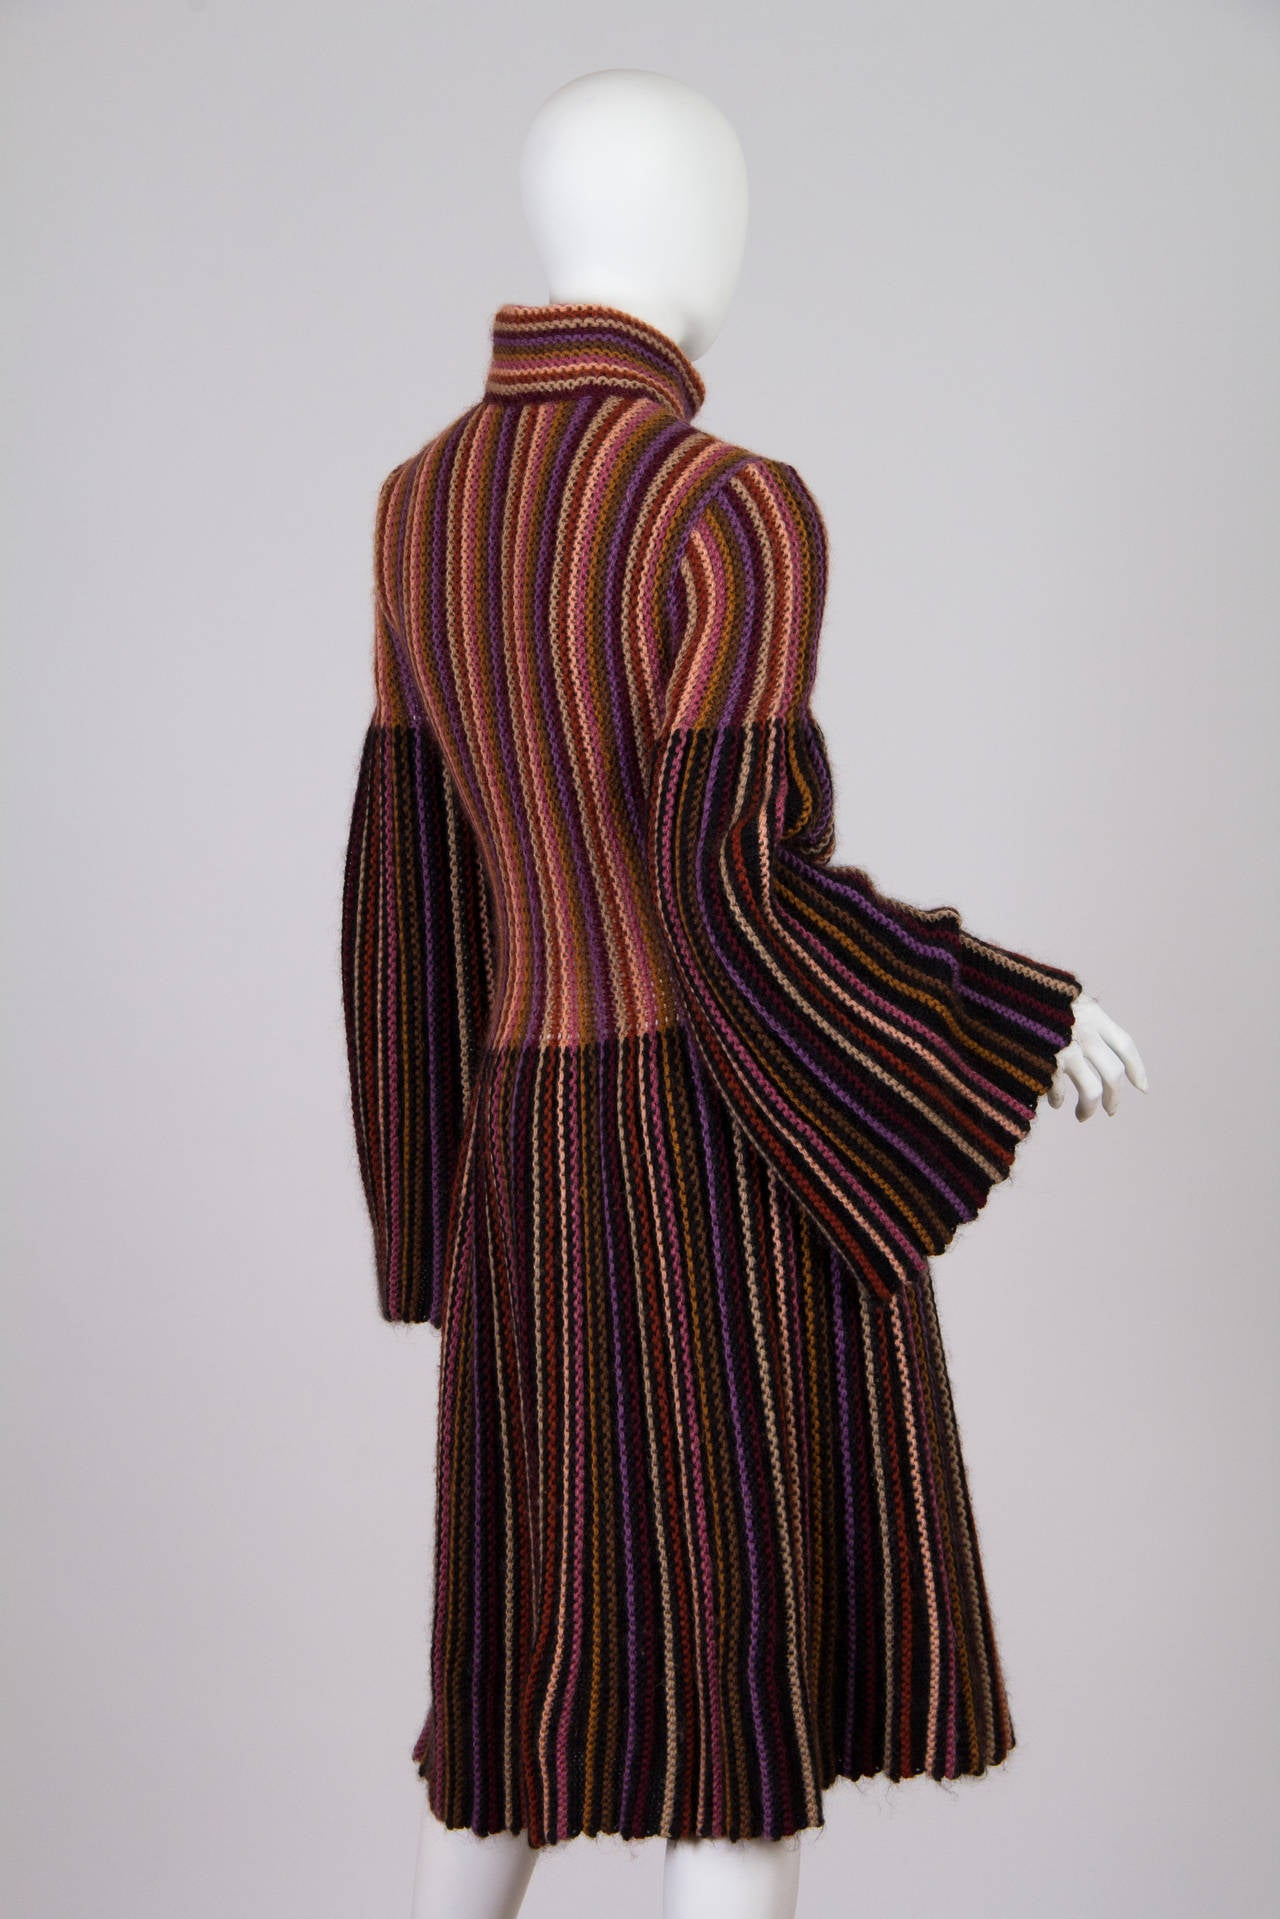 Blanket soft Missoni Mohair and Wool Knit Coat. 4